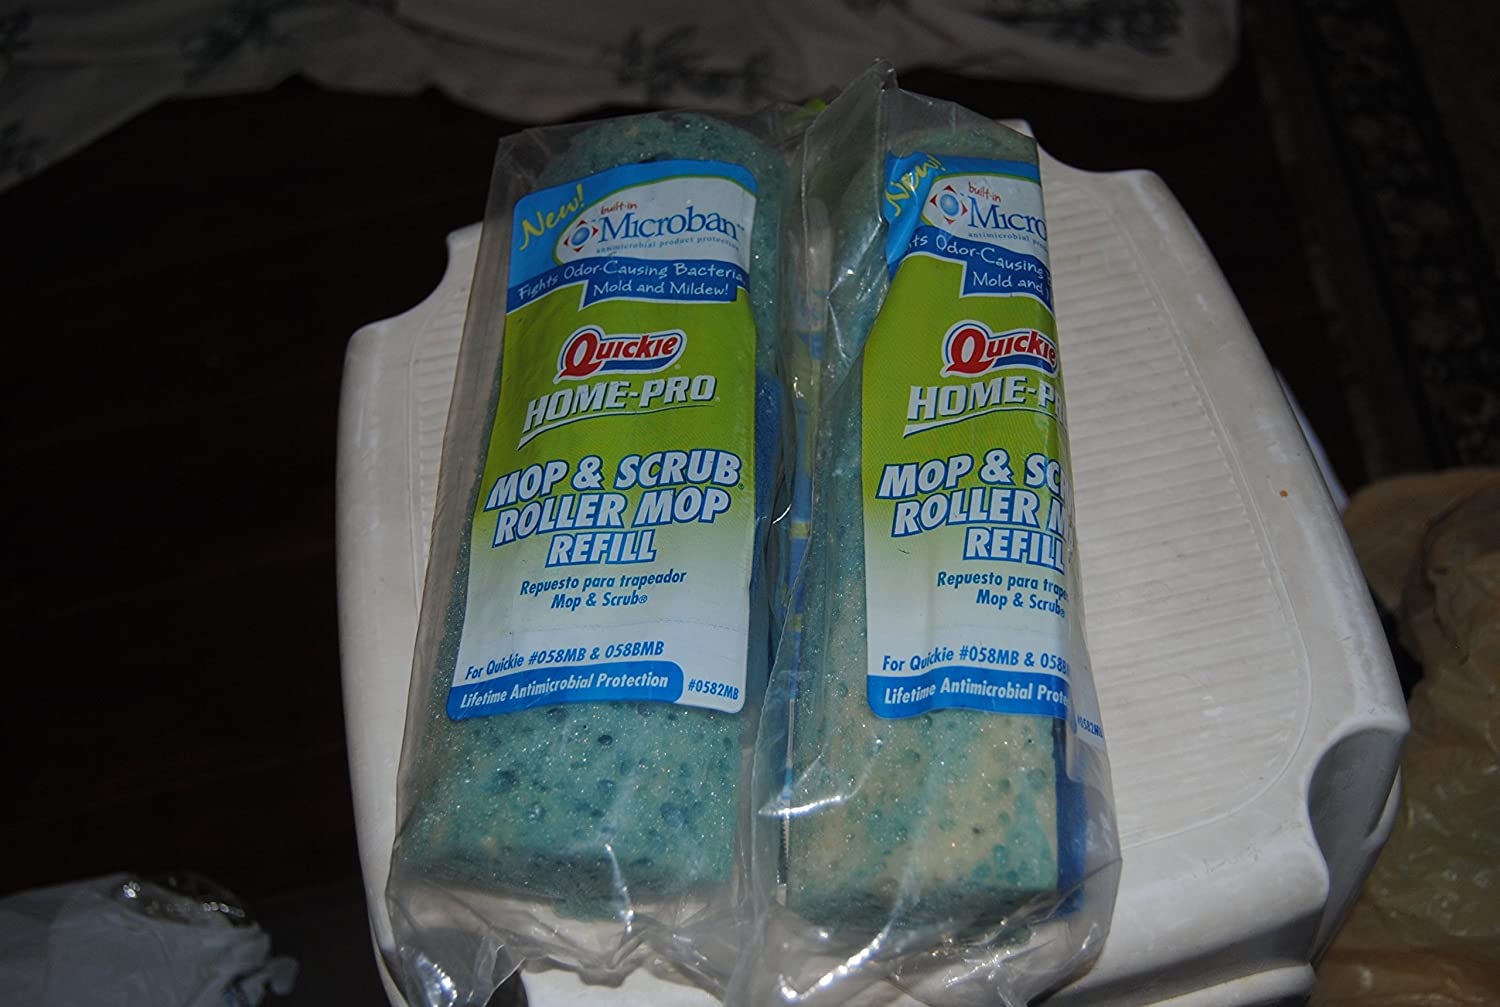 Quickie Home Pro Roller Mop Refill Polybagged Quickie Mfg Corp 0582MB